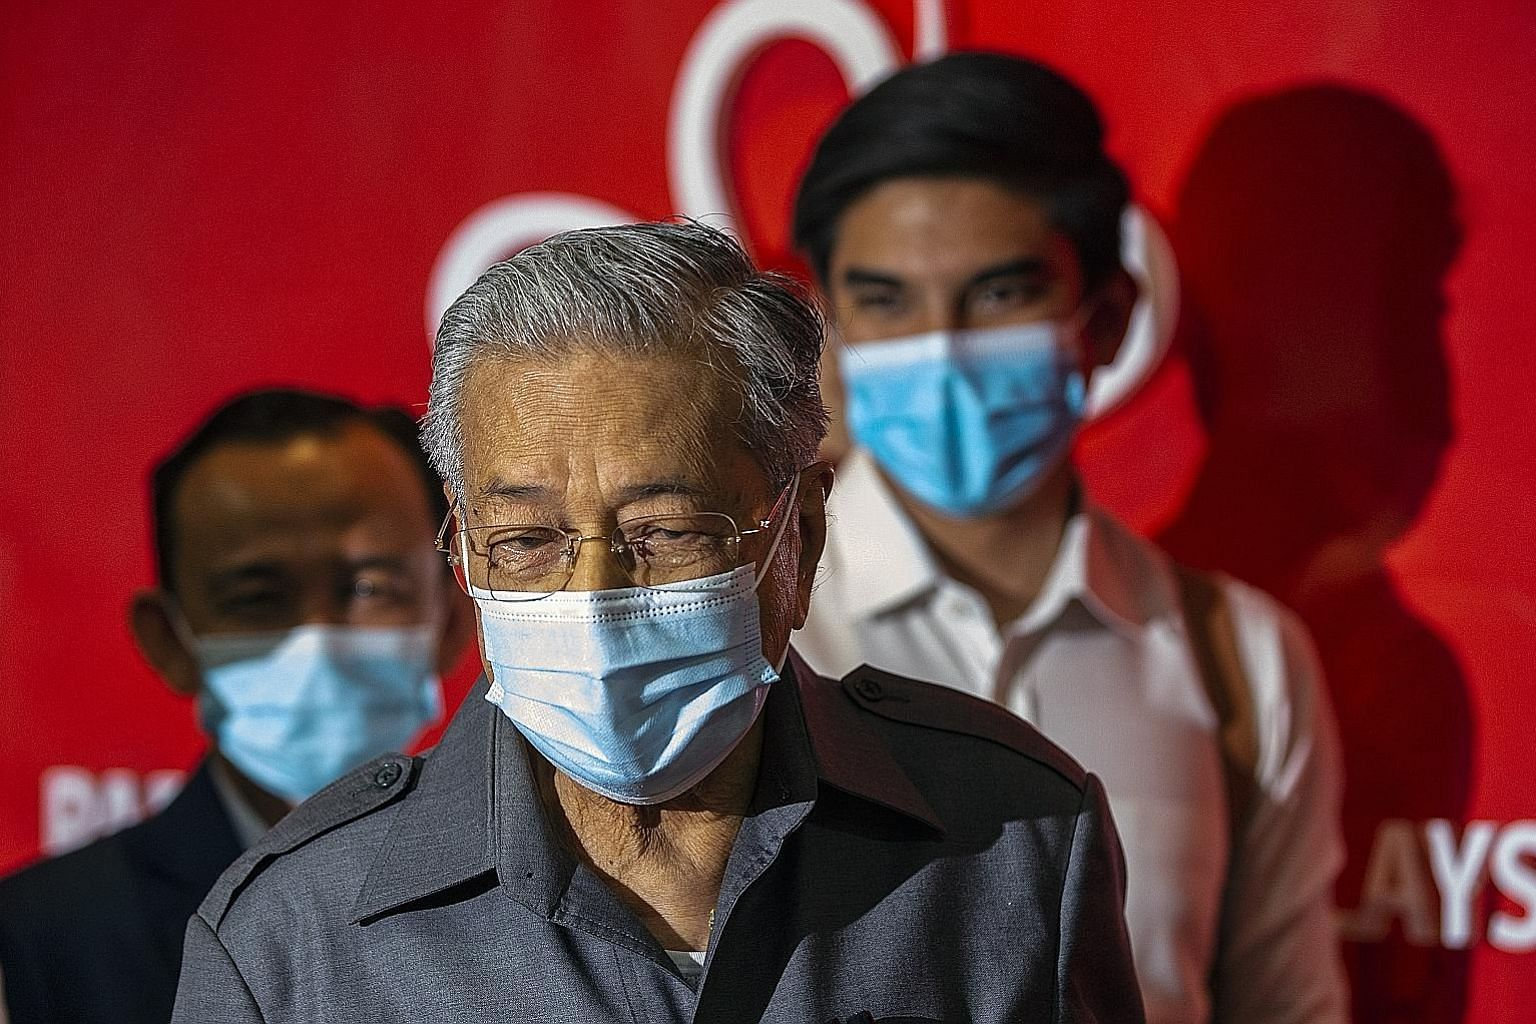 Former Malaysian premier Mahathir Mohamad (right) and four other MPs from Parti Pribumi Bersatu Malaysia, the party Tun Dr Mahathir co-founded, have been removed from the party for refusing to support the government led by party president Muhyiddin Y